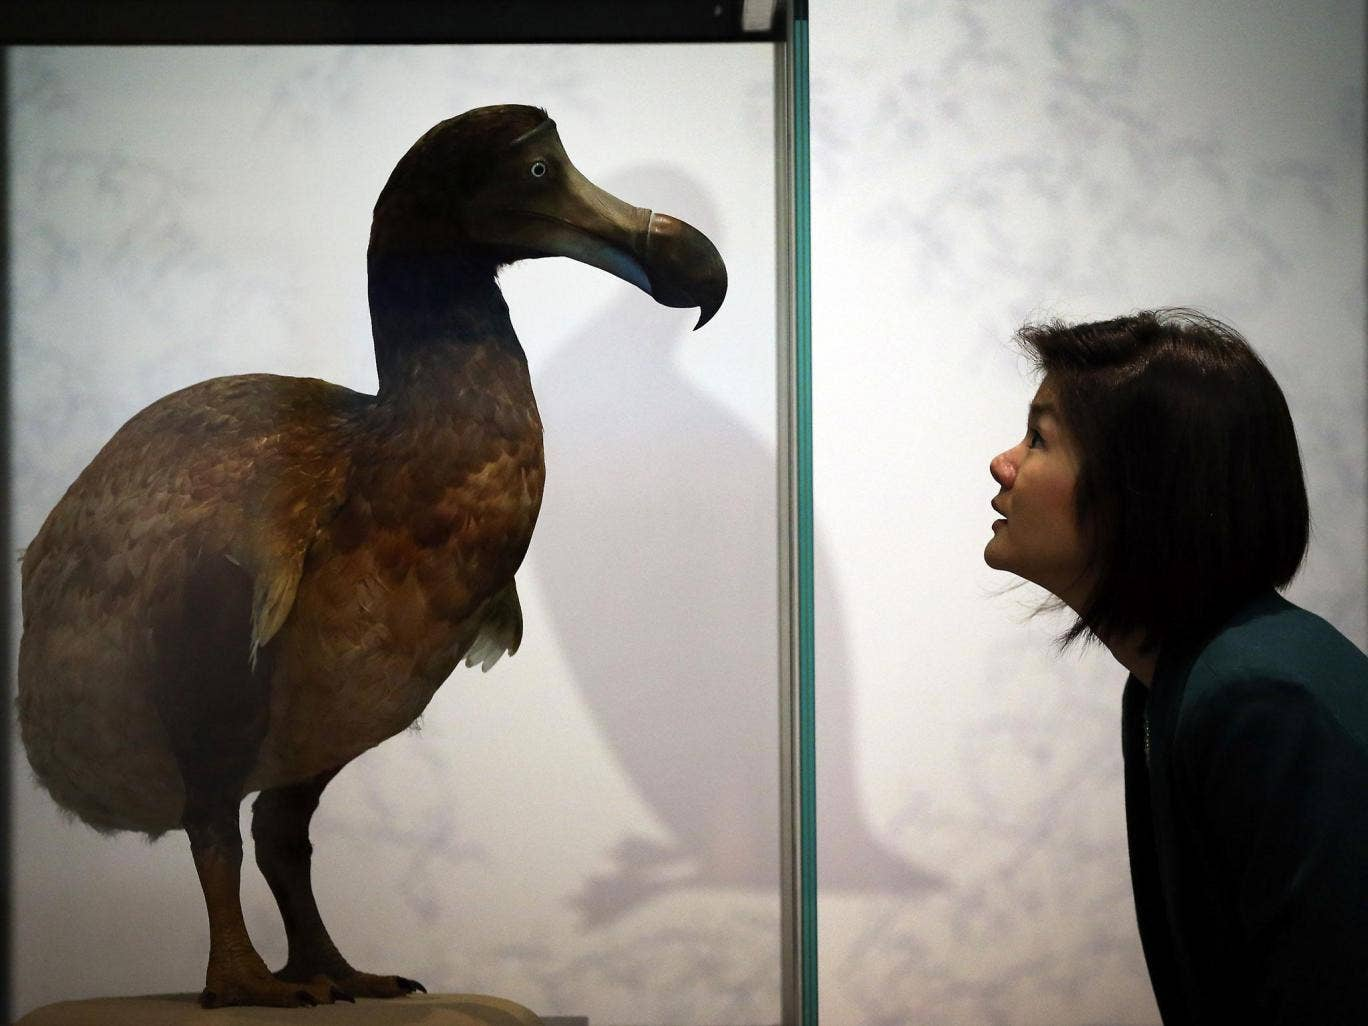 Dodo fossils were found in a mass grave on the island of Mauritius